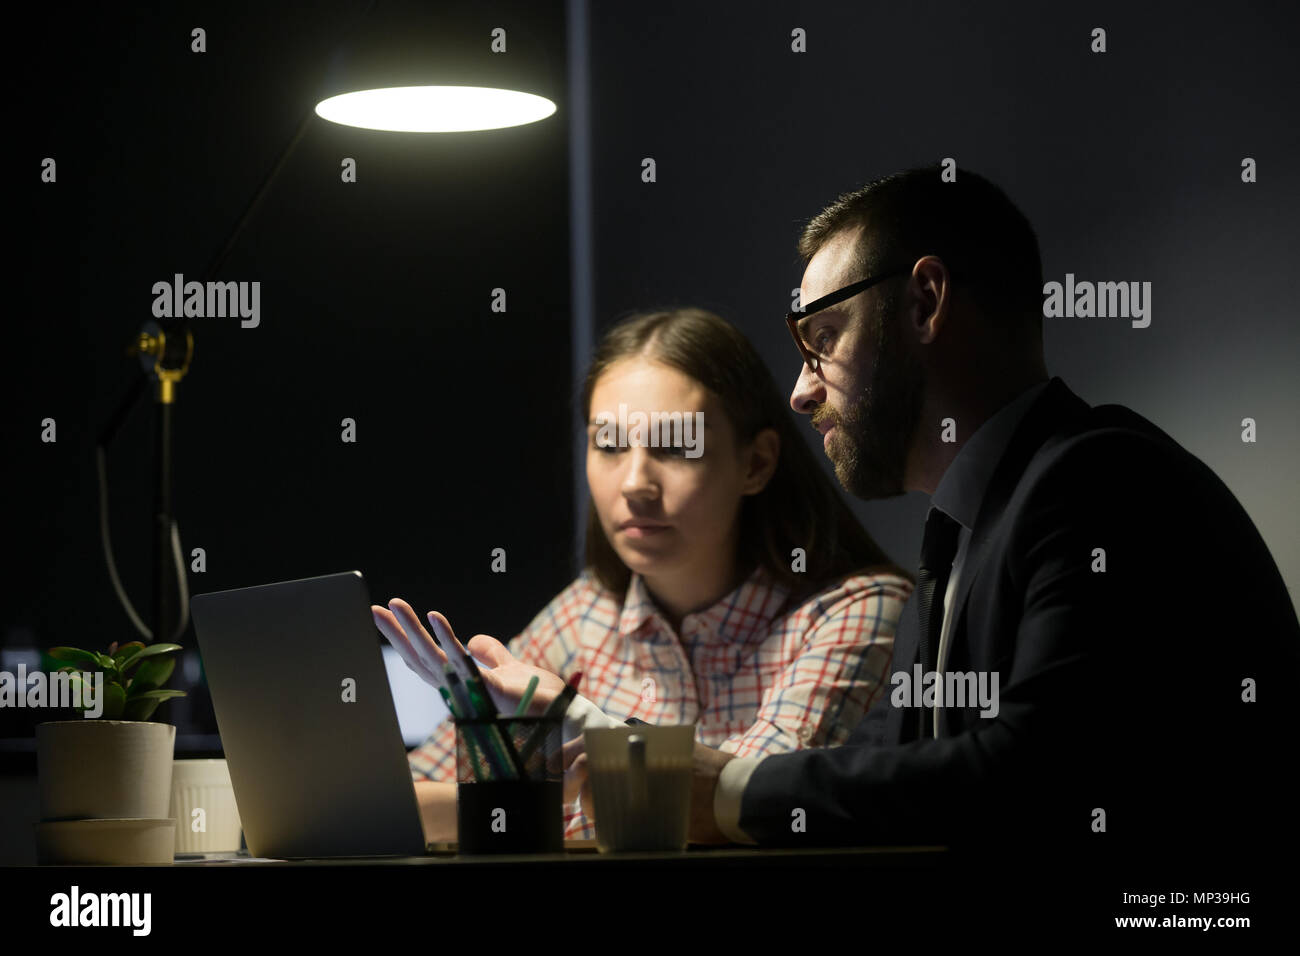 Male worker explaining marketing plans to female coworker - Stock Image